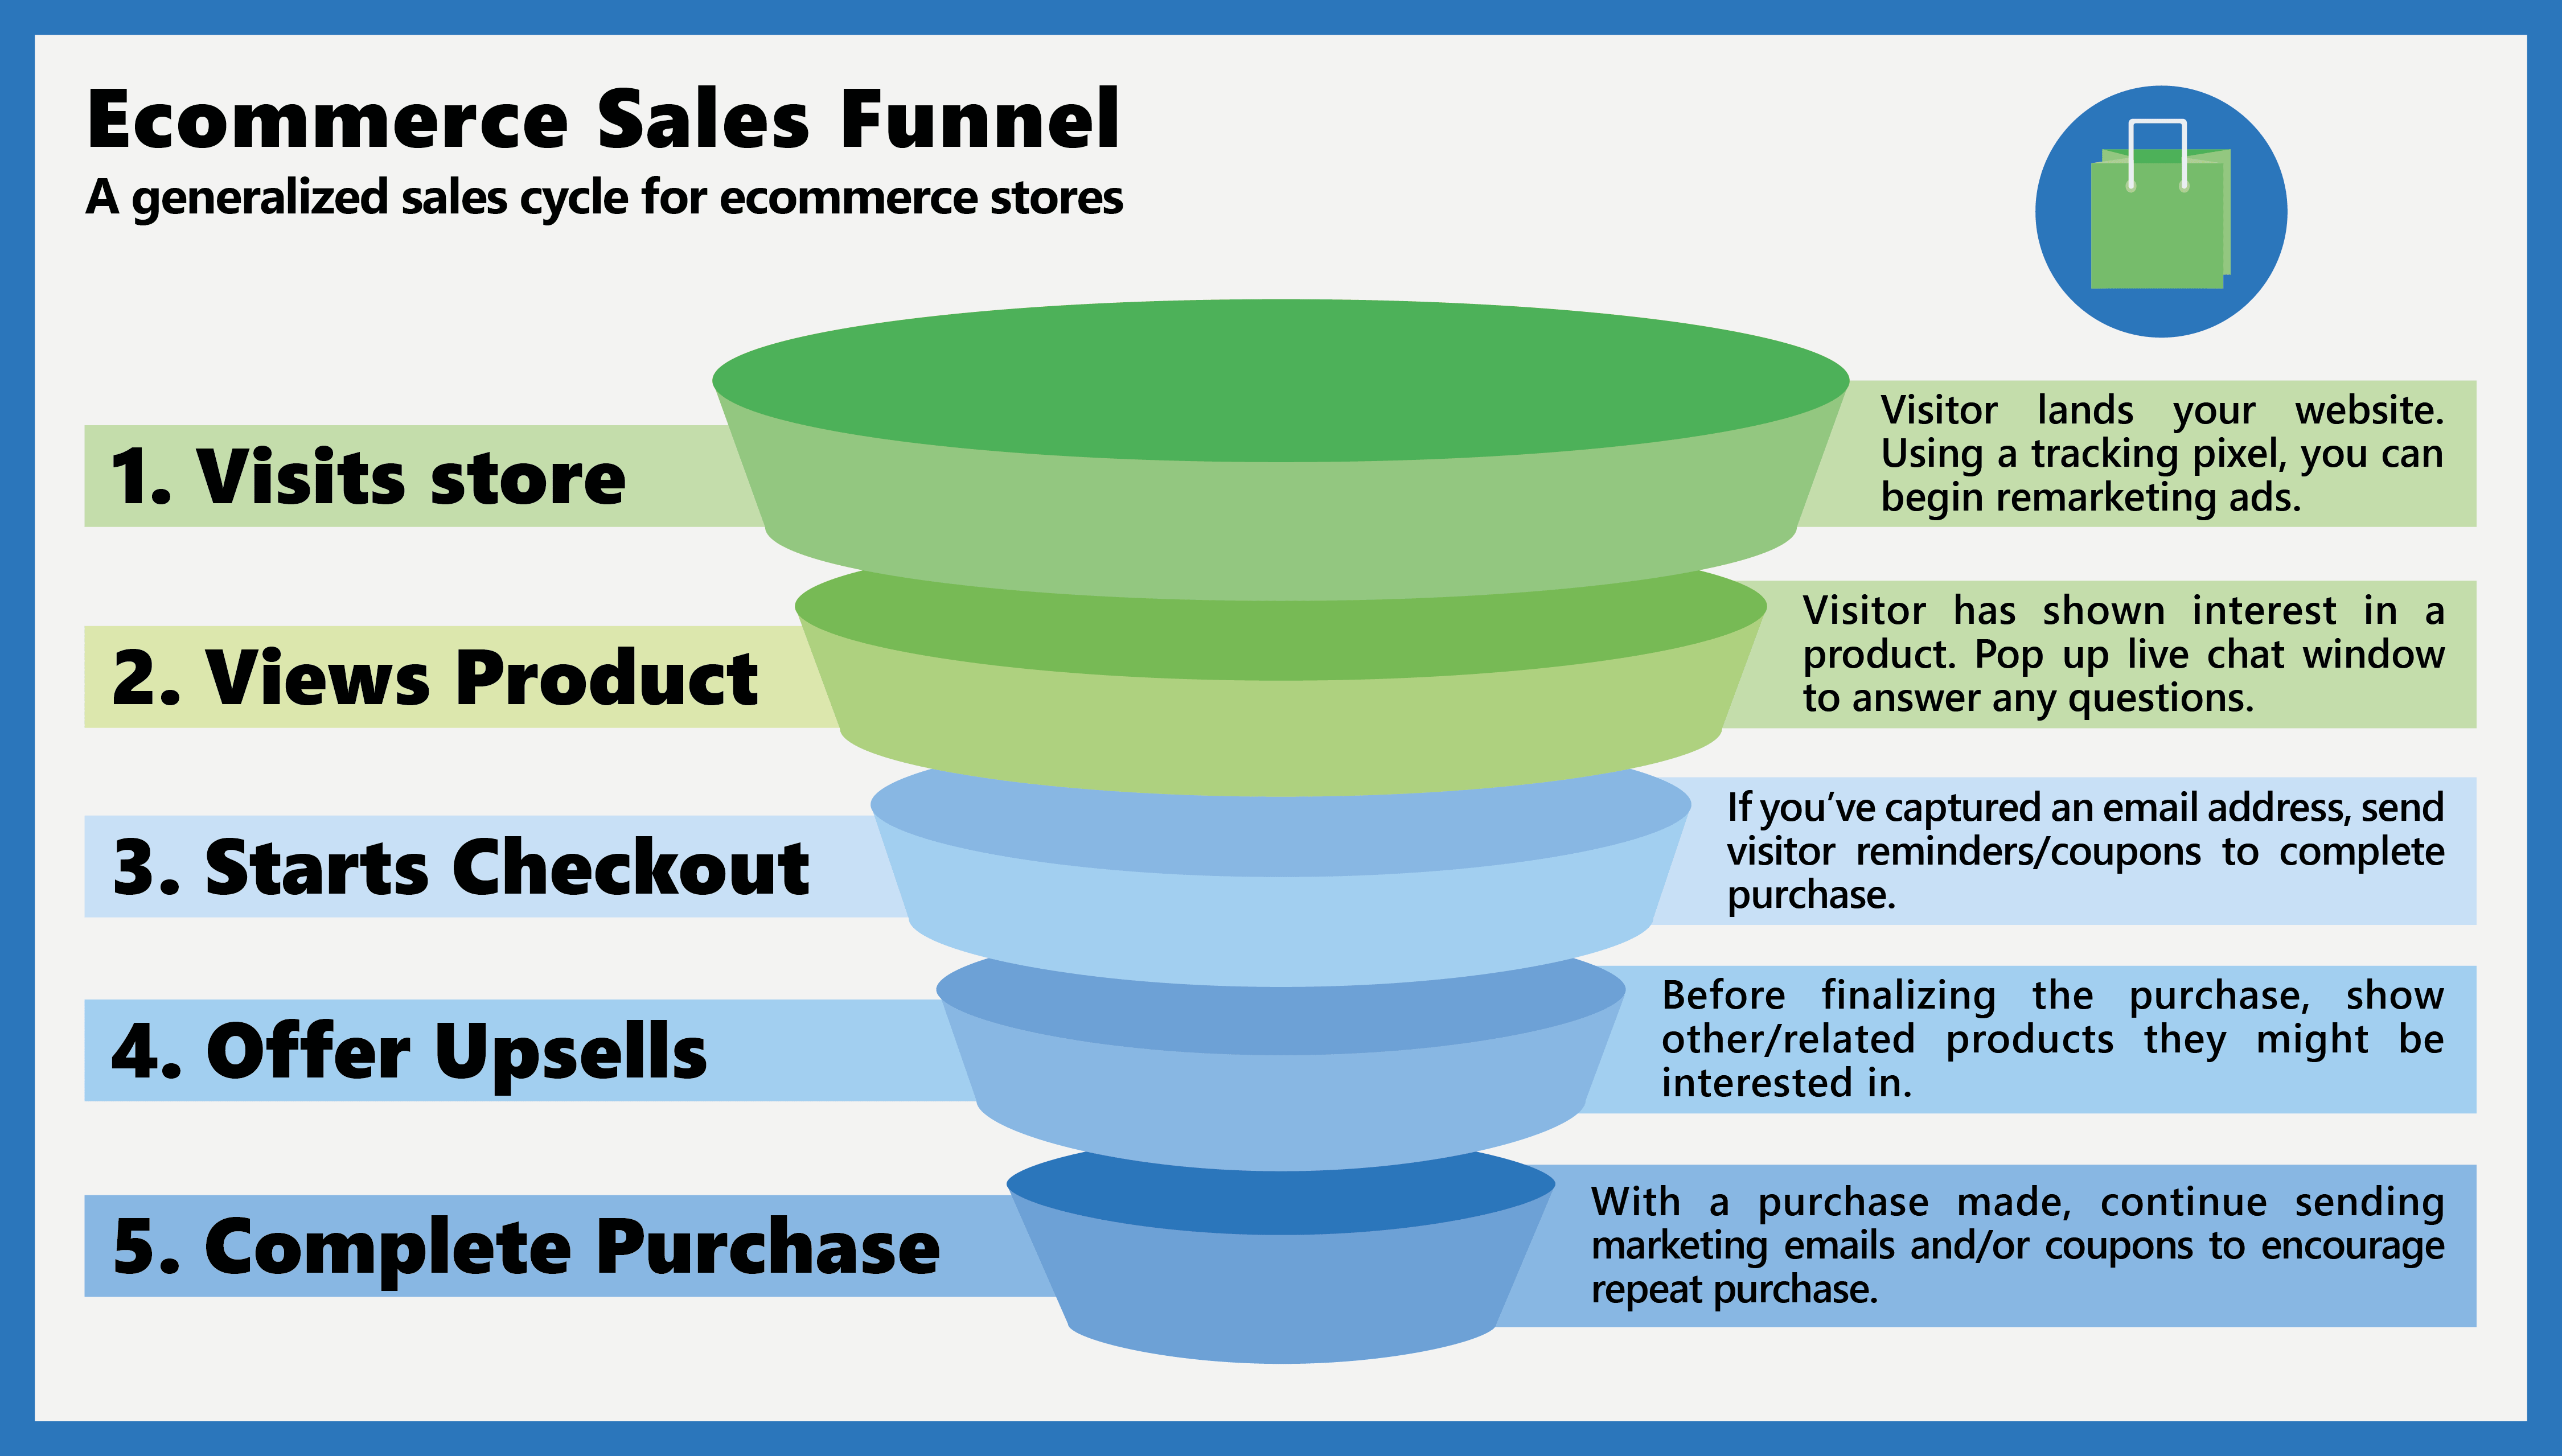 Its-easy-to-forget-to-optimize-for-the-whole-sales-funnel